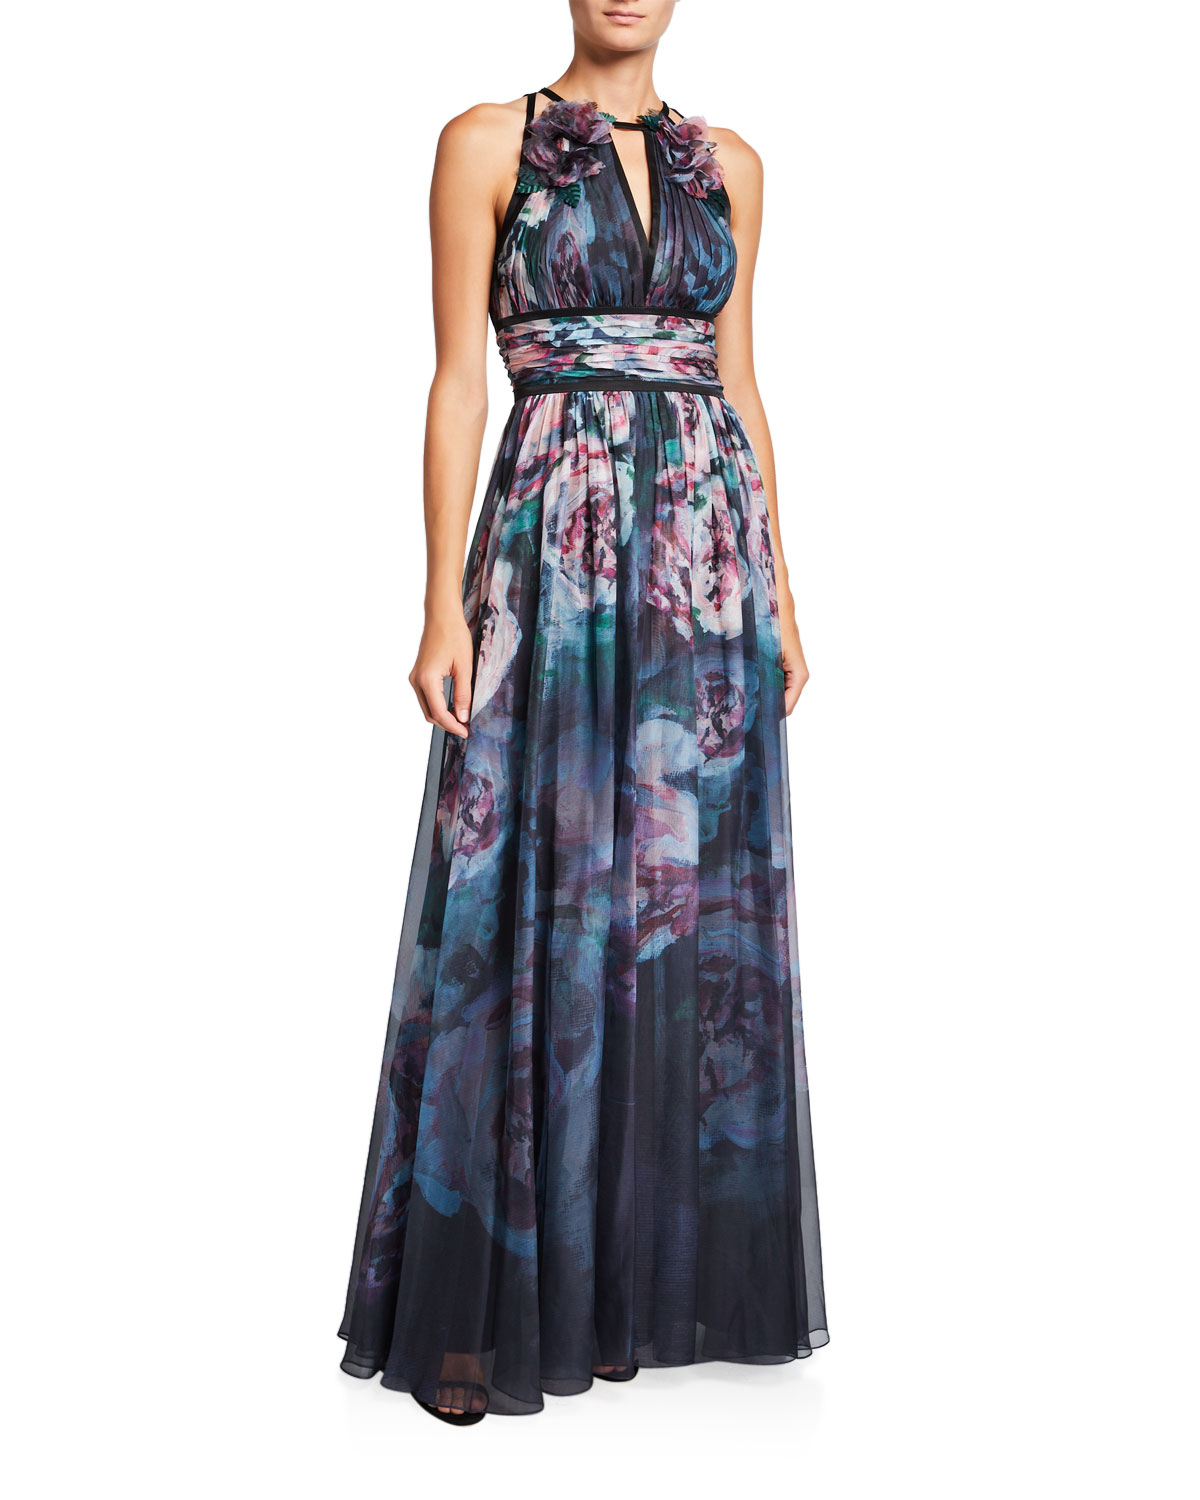 Marchesa Notte Tops WATERCOLOR SLEEVELESS CHIFFON GOWN WITH SATIN TRIM & KEYHOLE